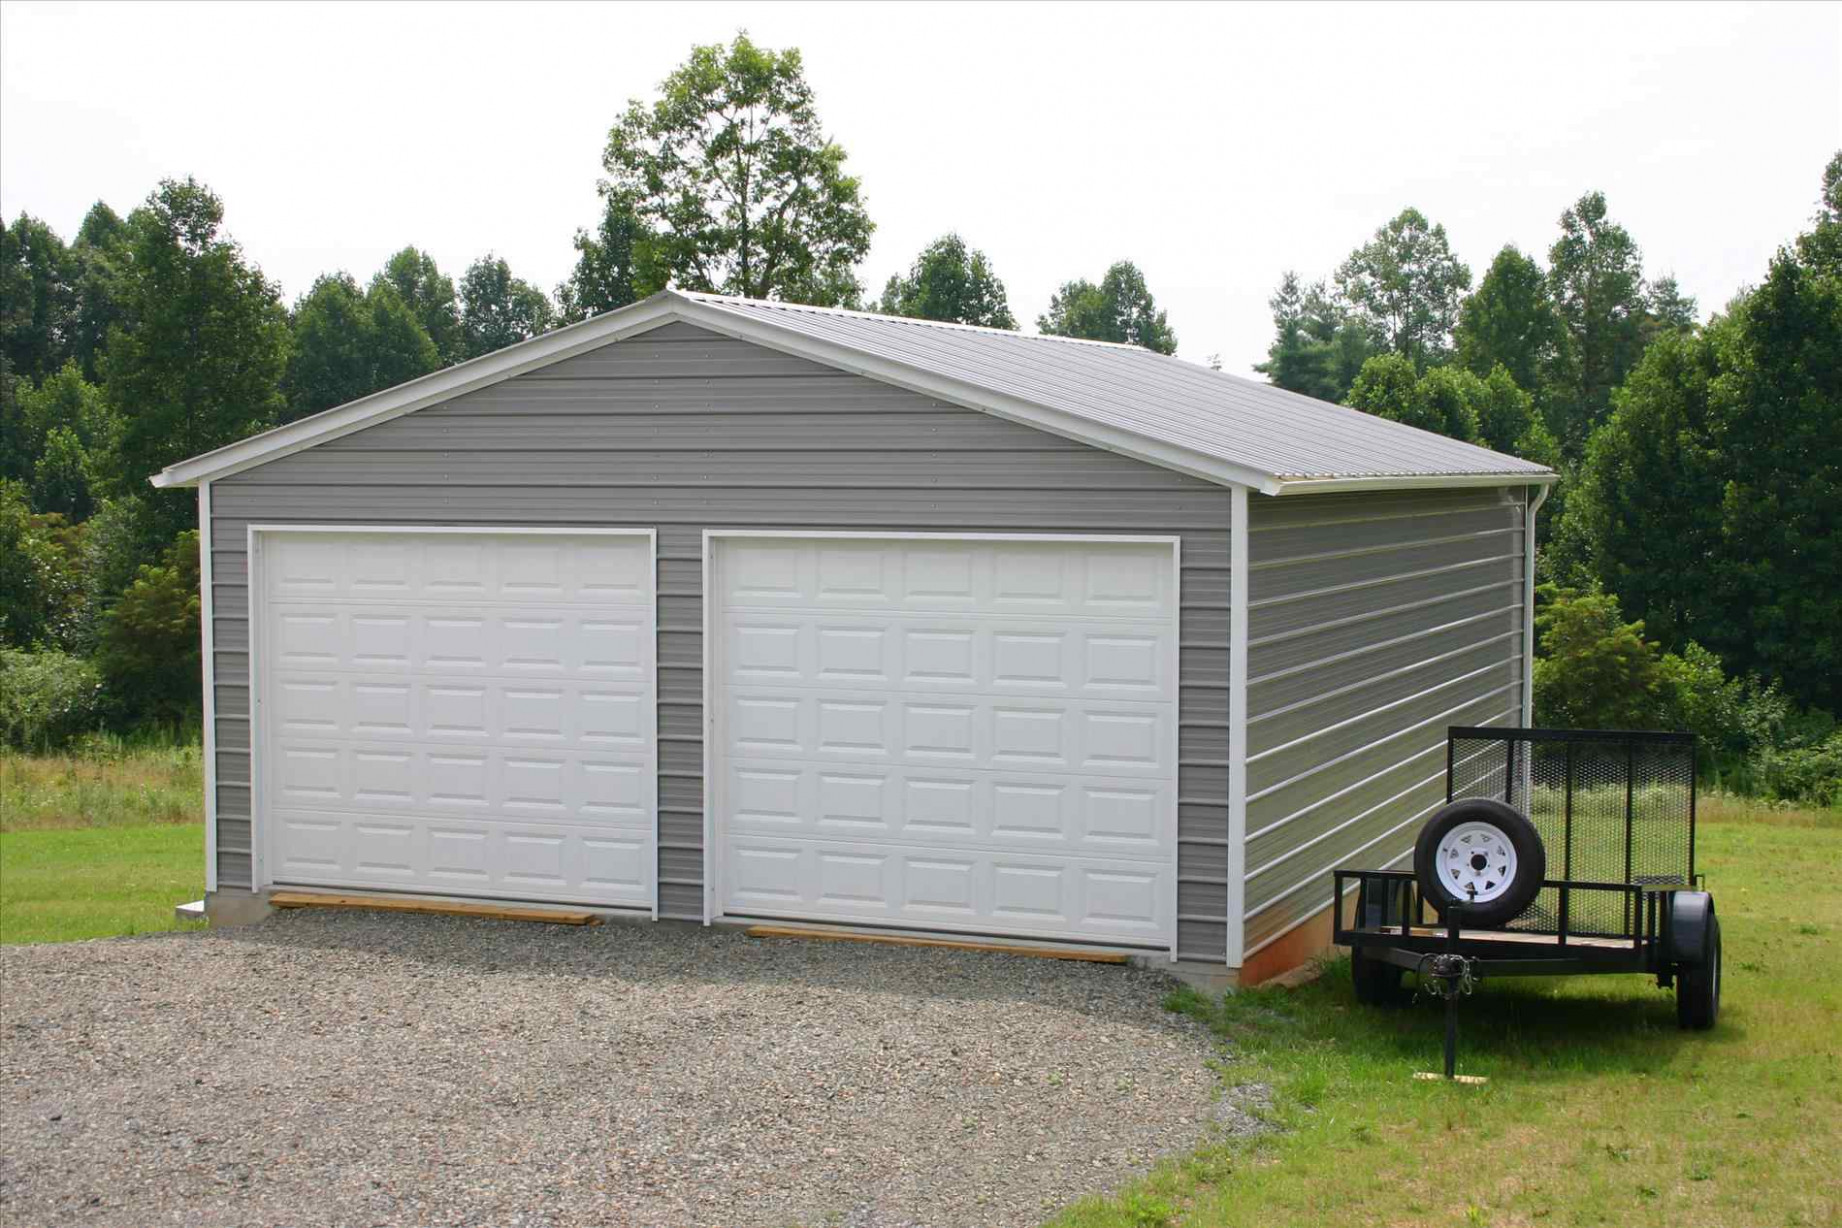 24x24 Garage Kit Lowes SIMPLE HOUSE PLANS : The Frugal ..